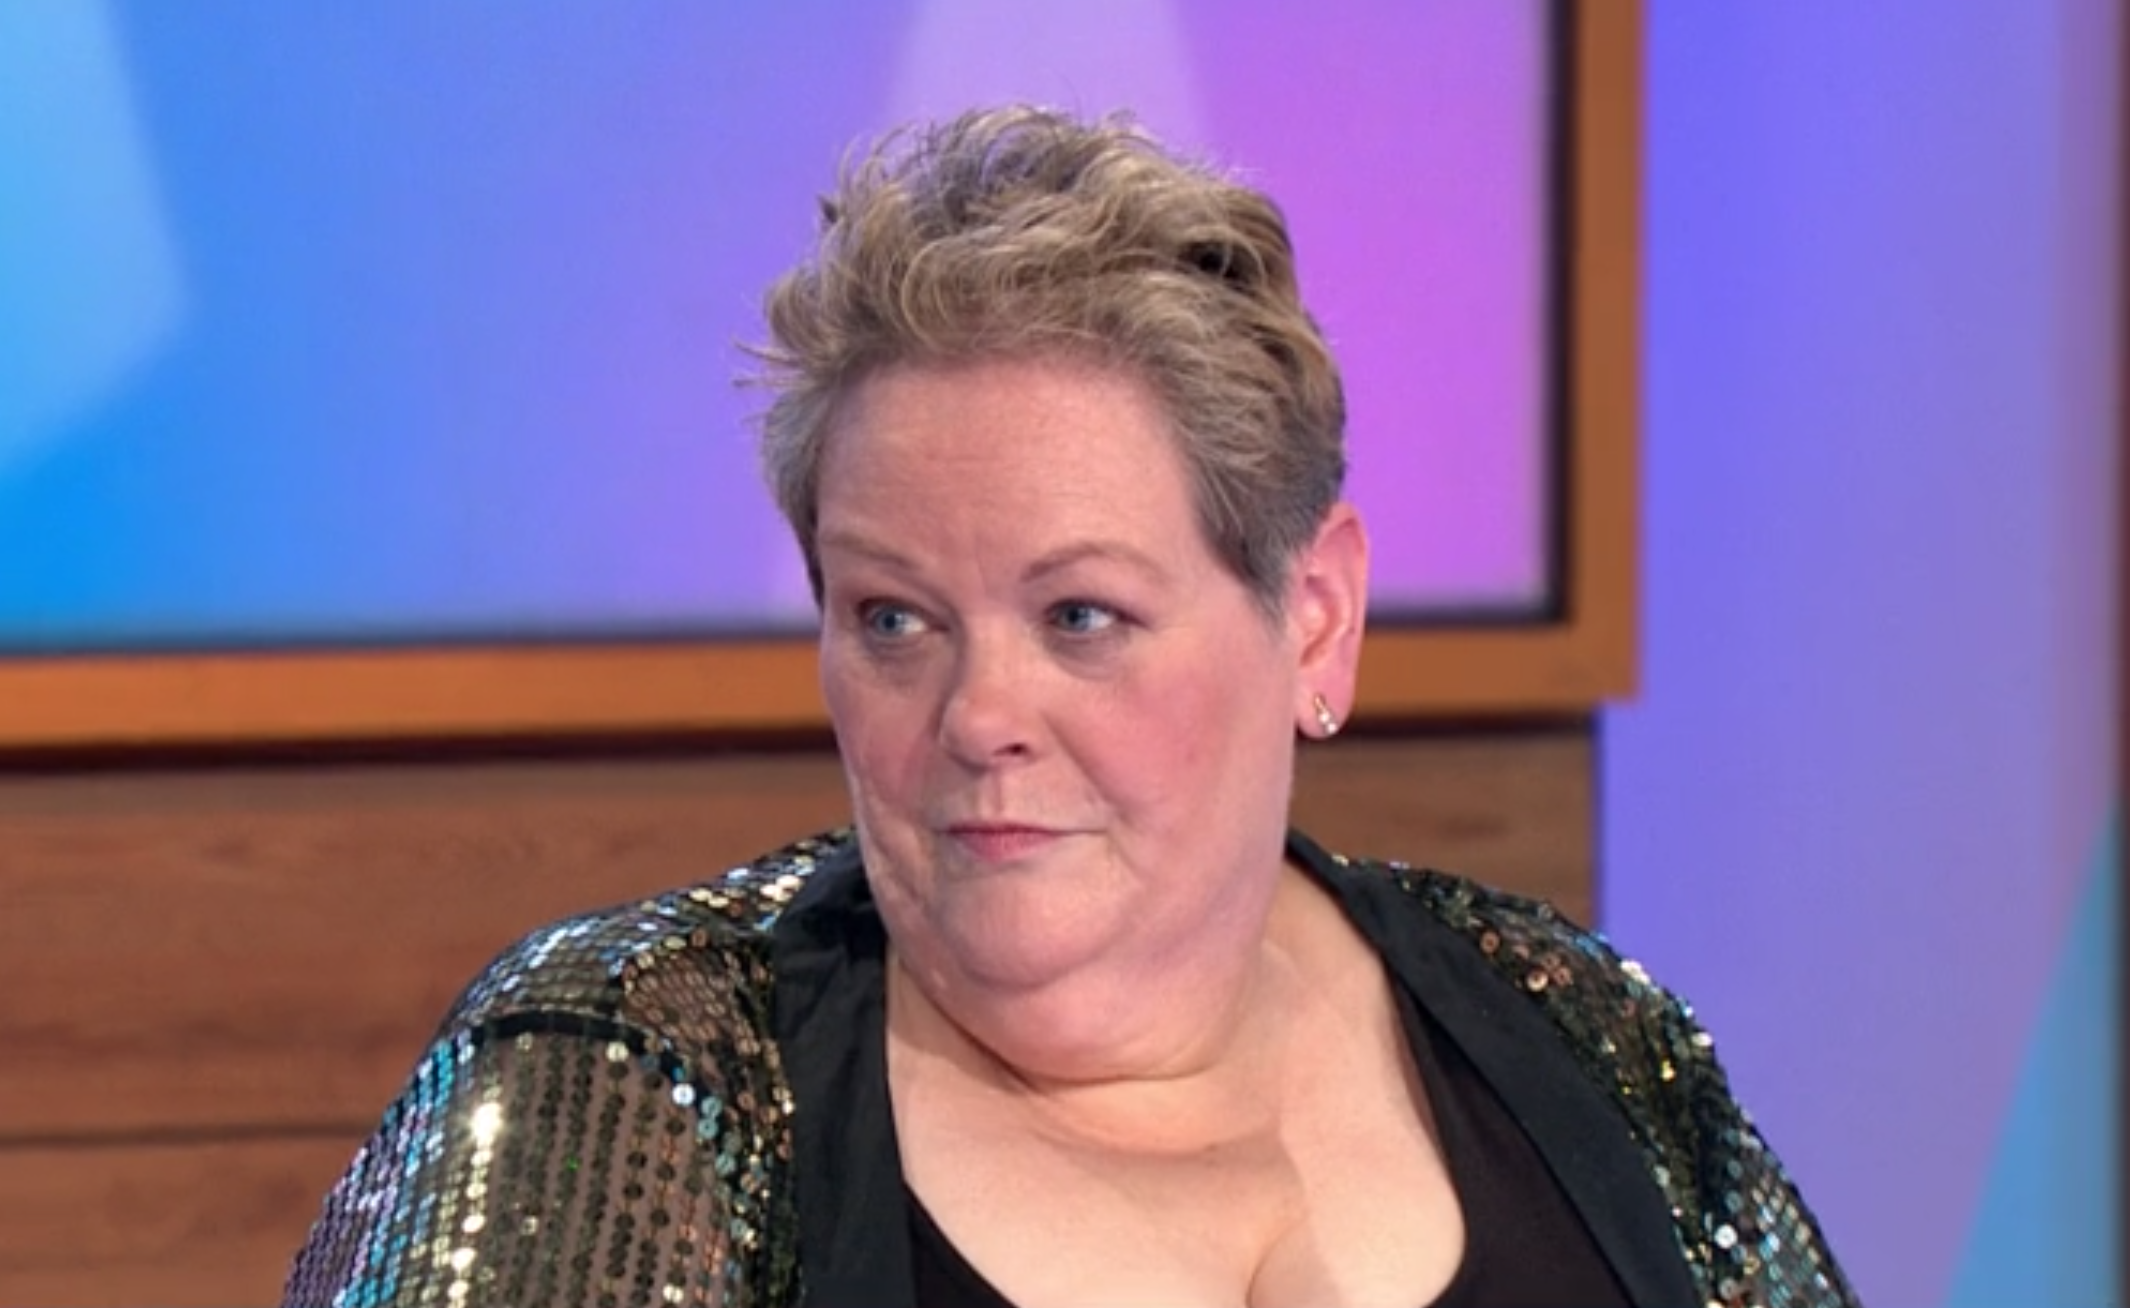 The Chase's Anne Hegerty defends Loose Women after show is slammed for cutting her off